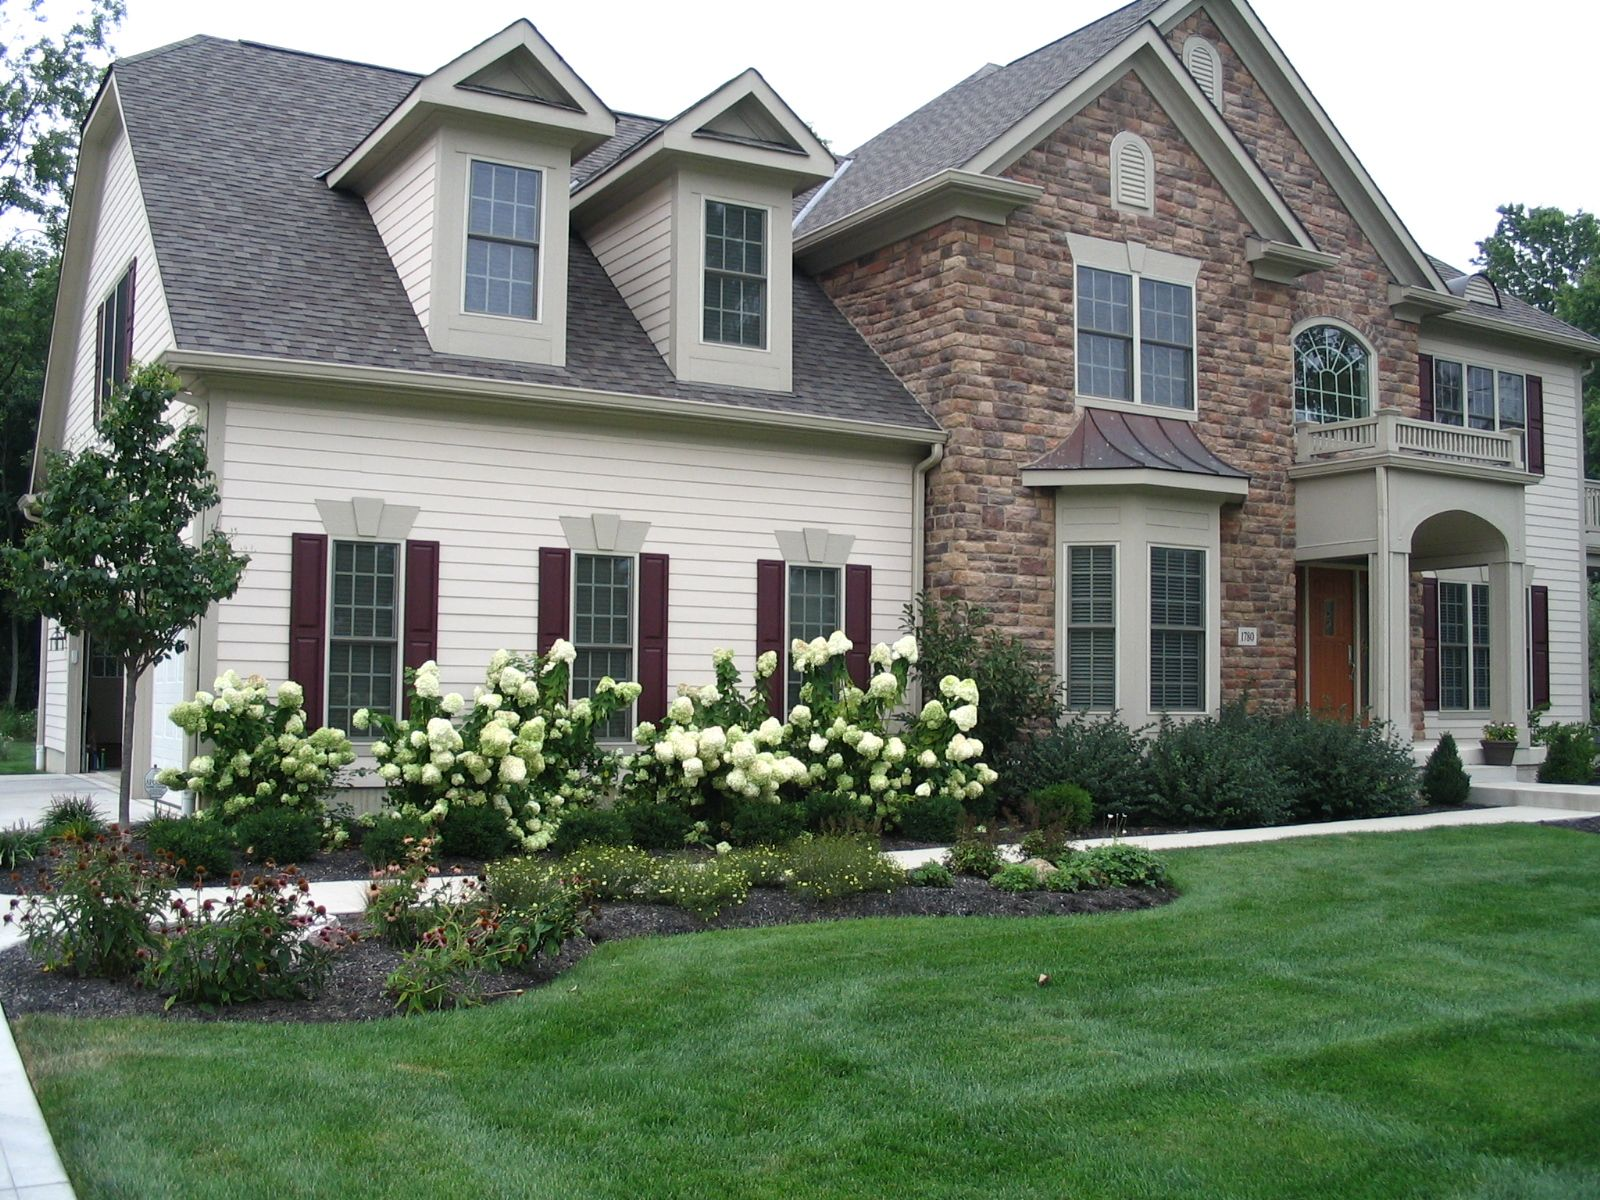 lime light hydrangea perennial garden lilac front yard foundation planting installed by. Black Bedroom Furniture Sets. Home Design Ideas